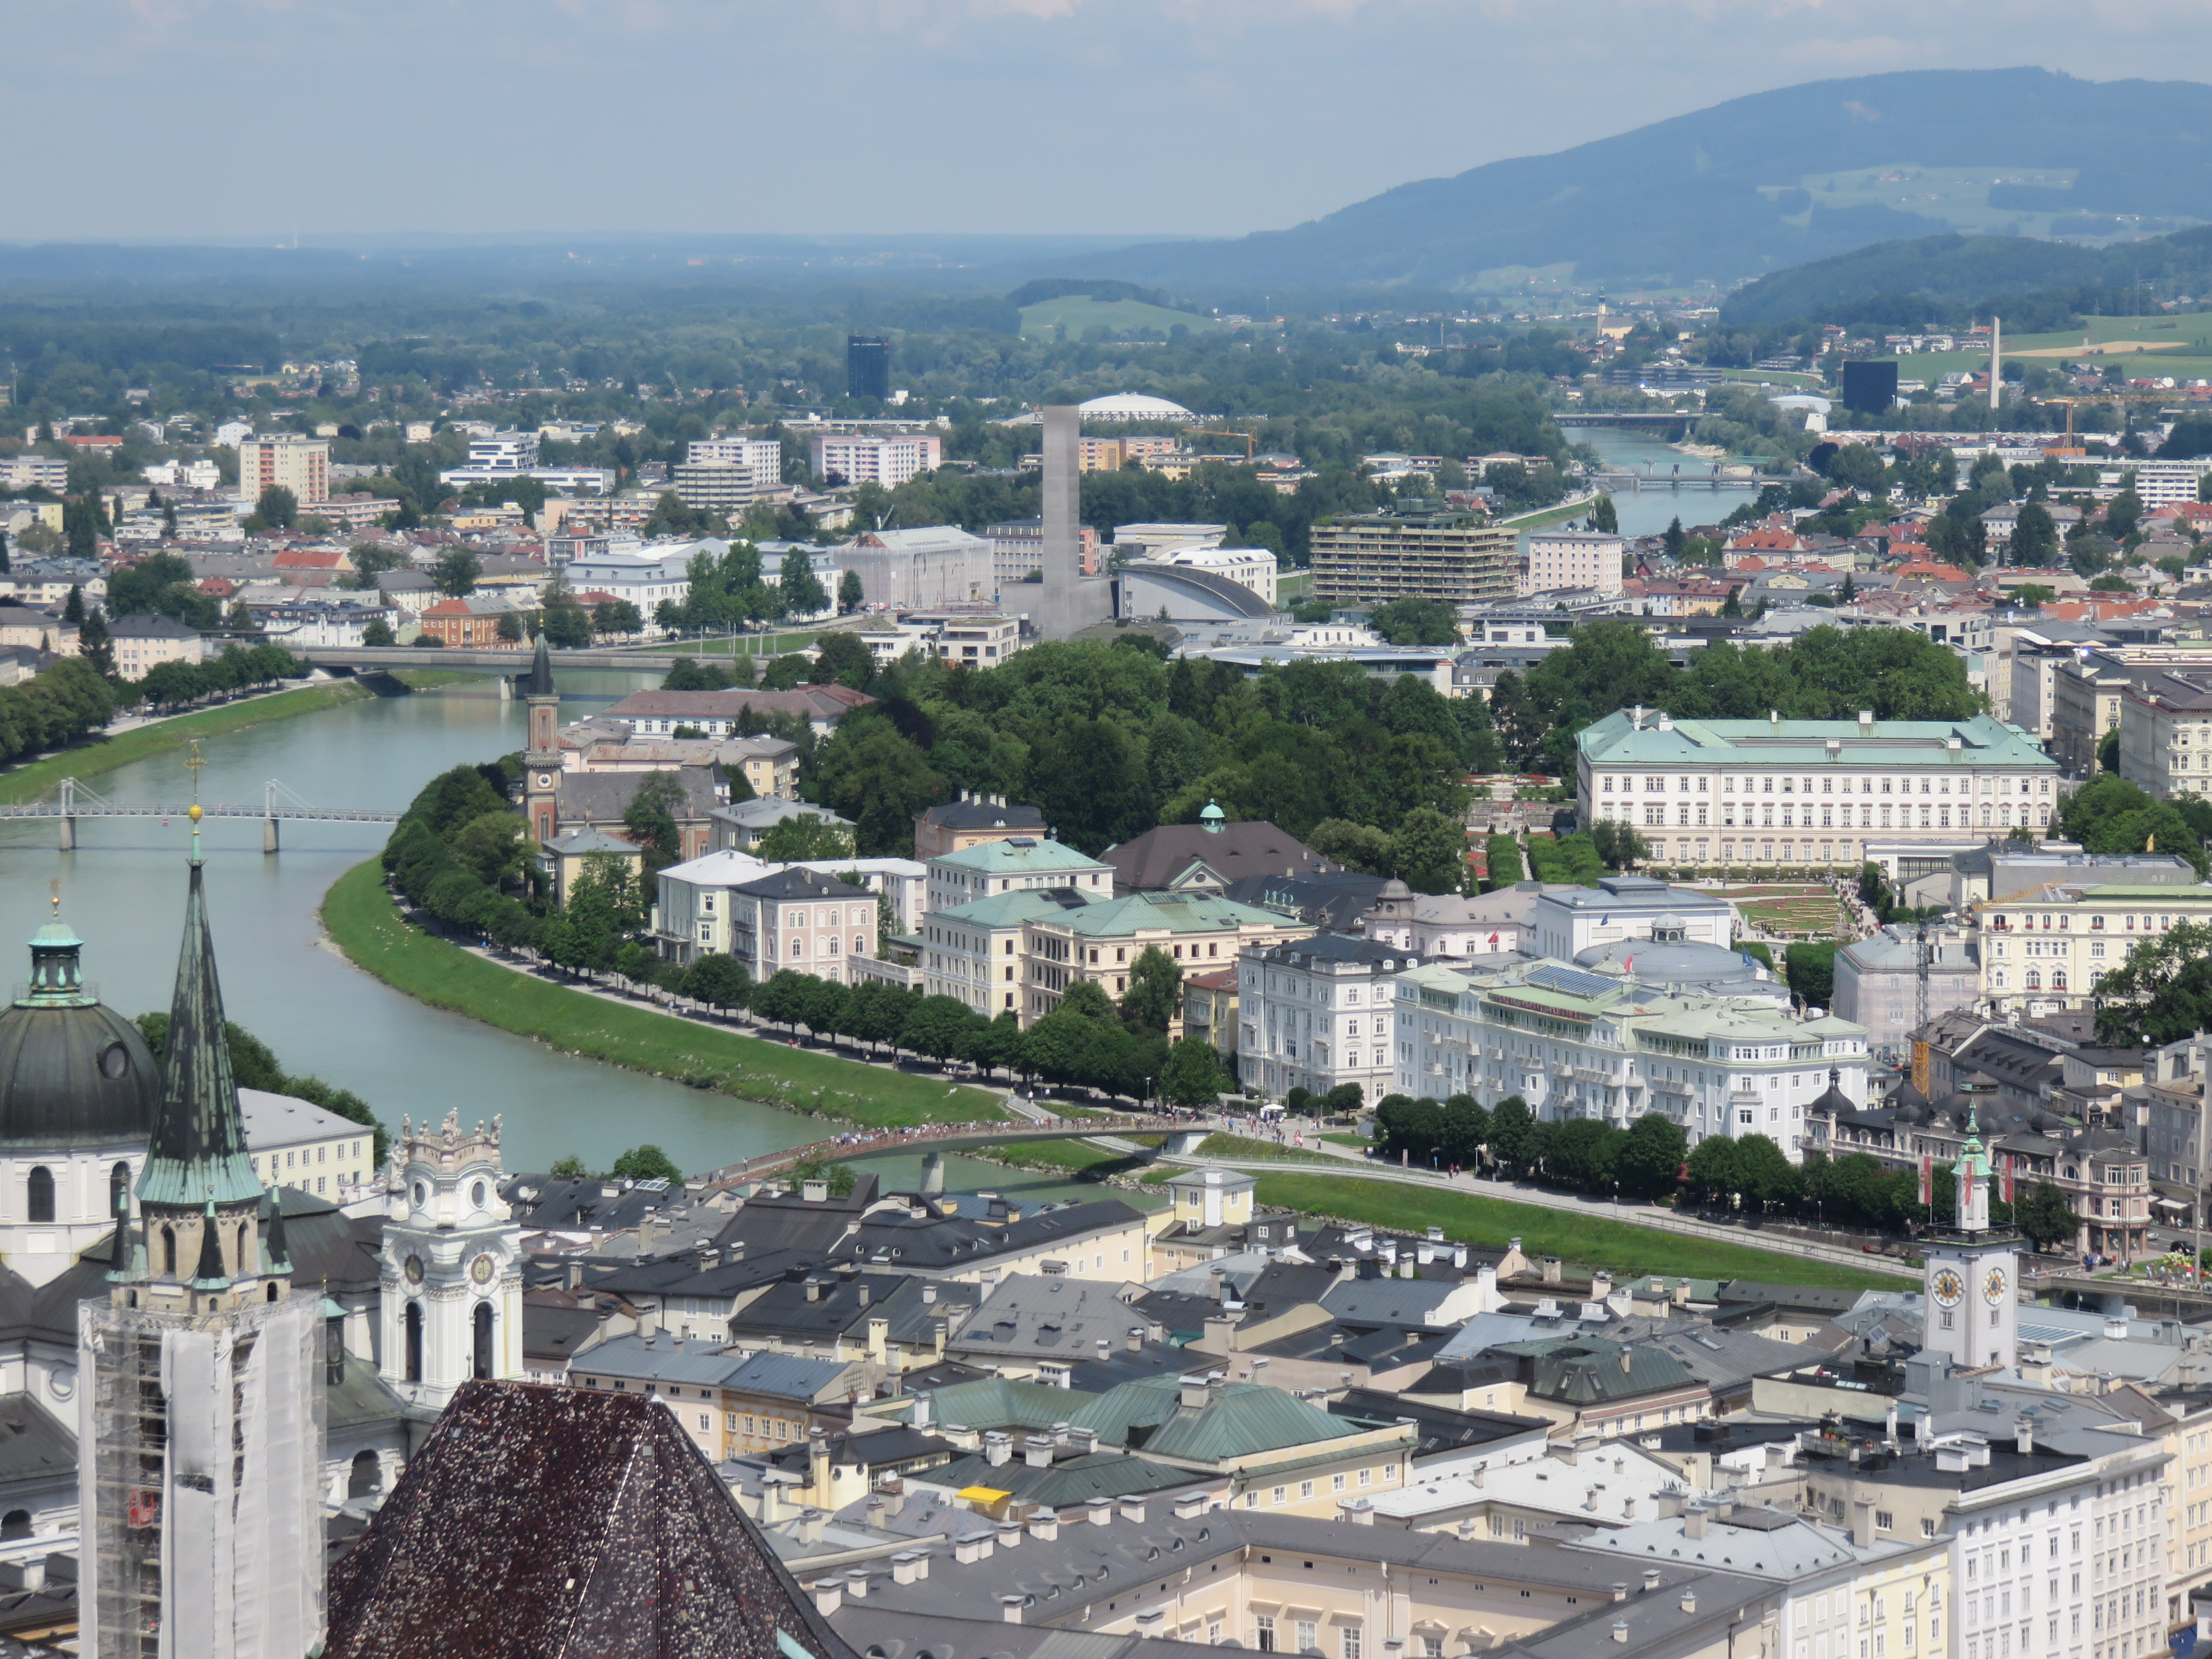 IMG_9465 Looking down on the city of Salzburg.